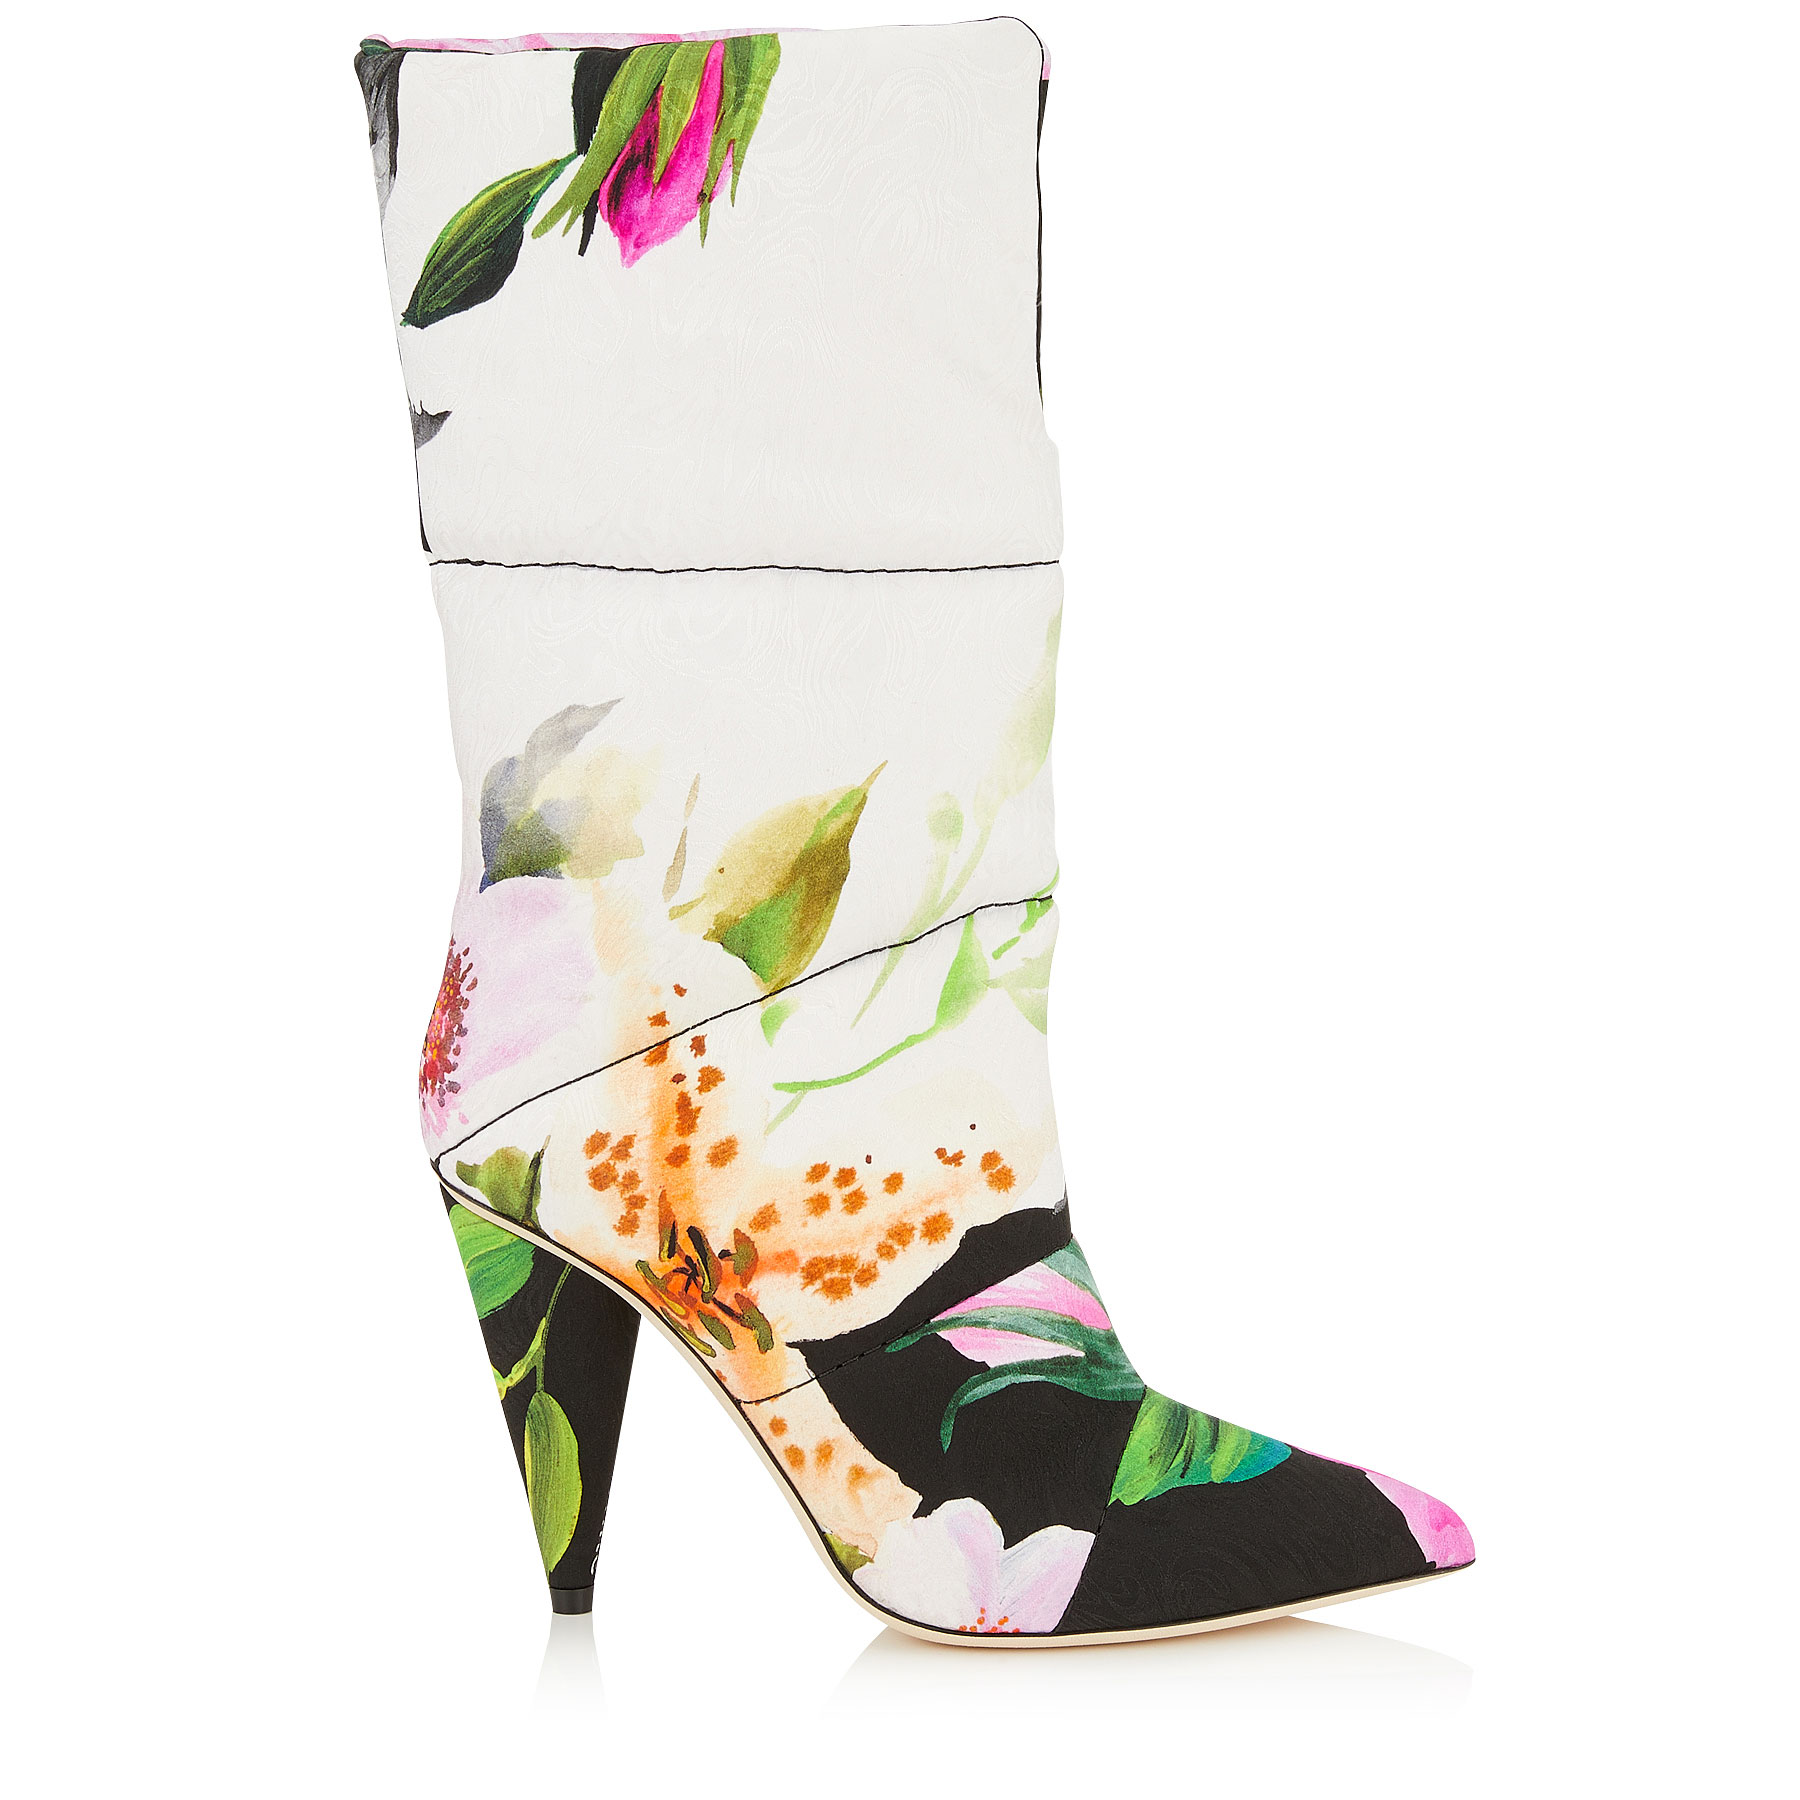 SARA 100 Floral Padded Printed Moire Mid High Boots by Jimmy Choo